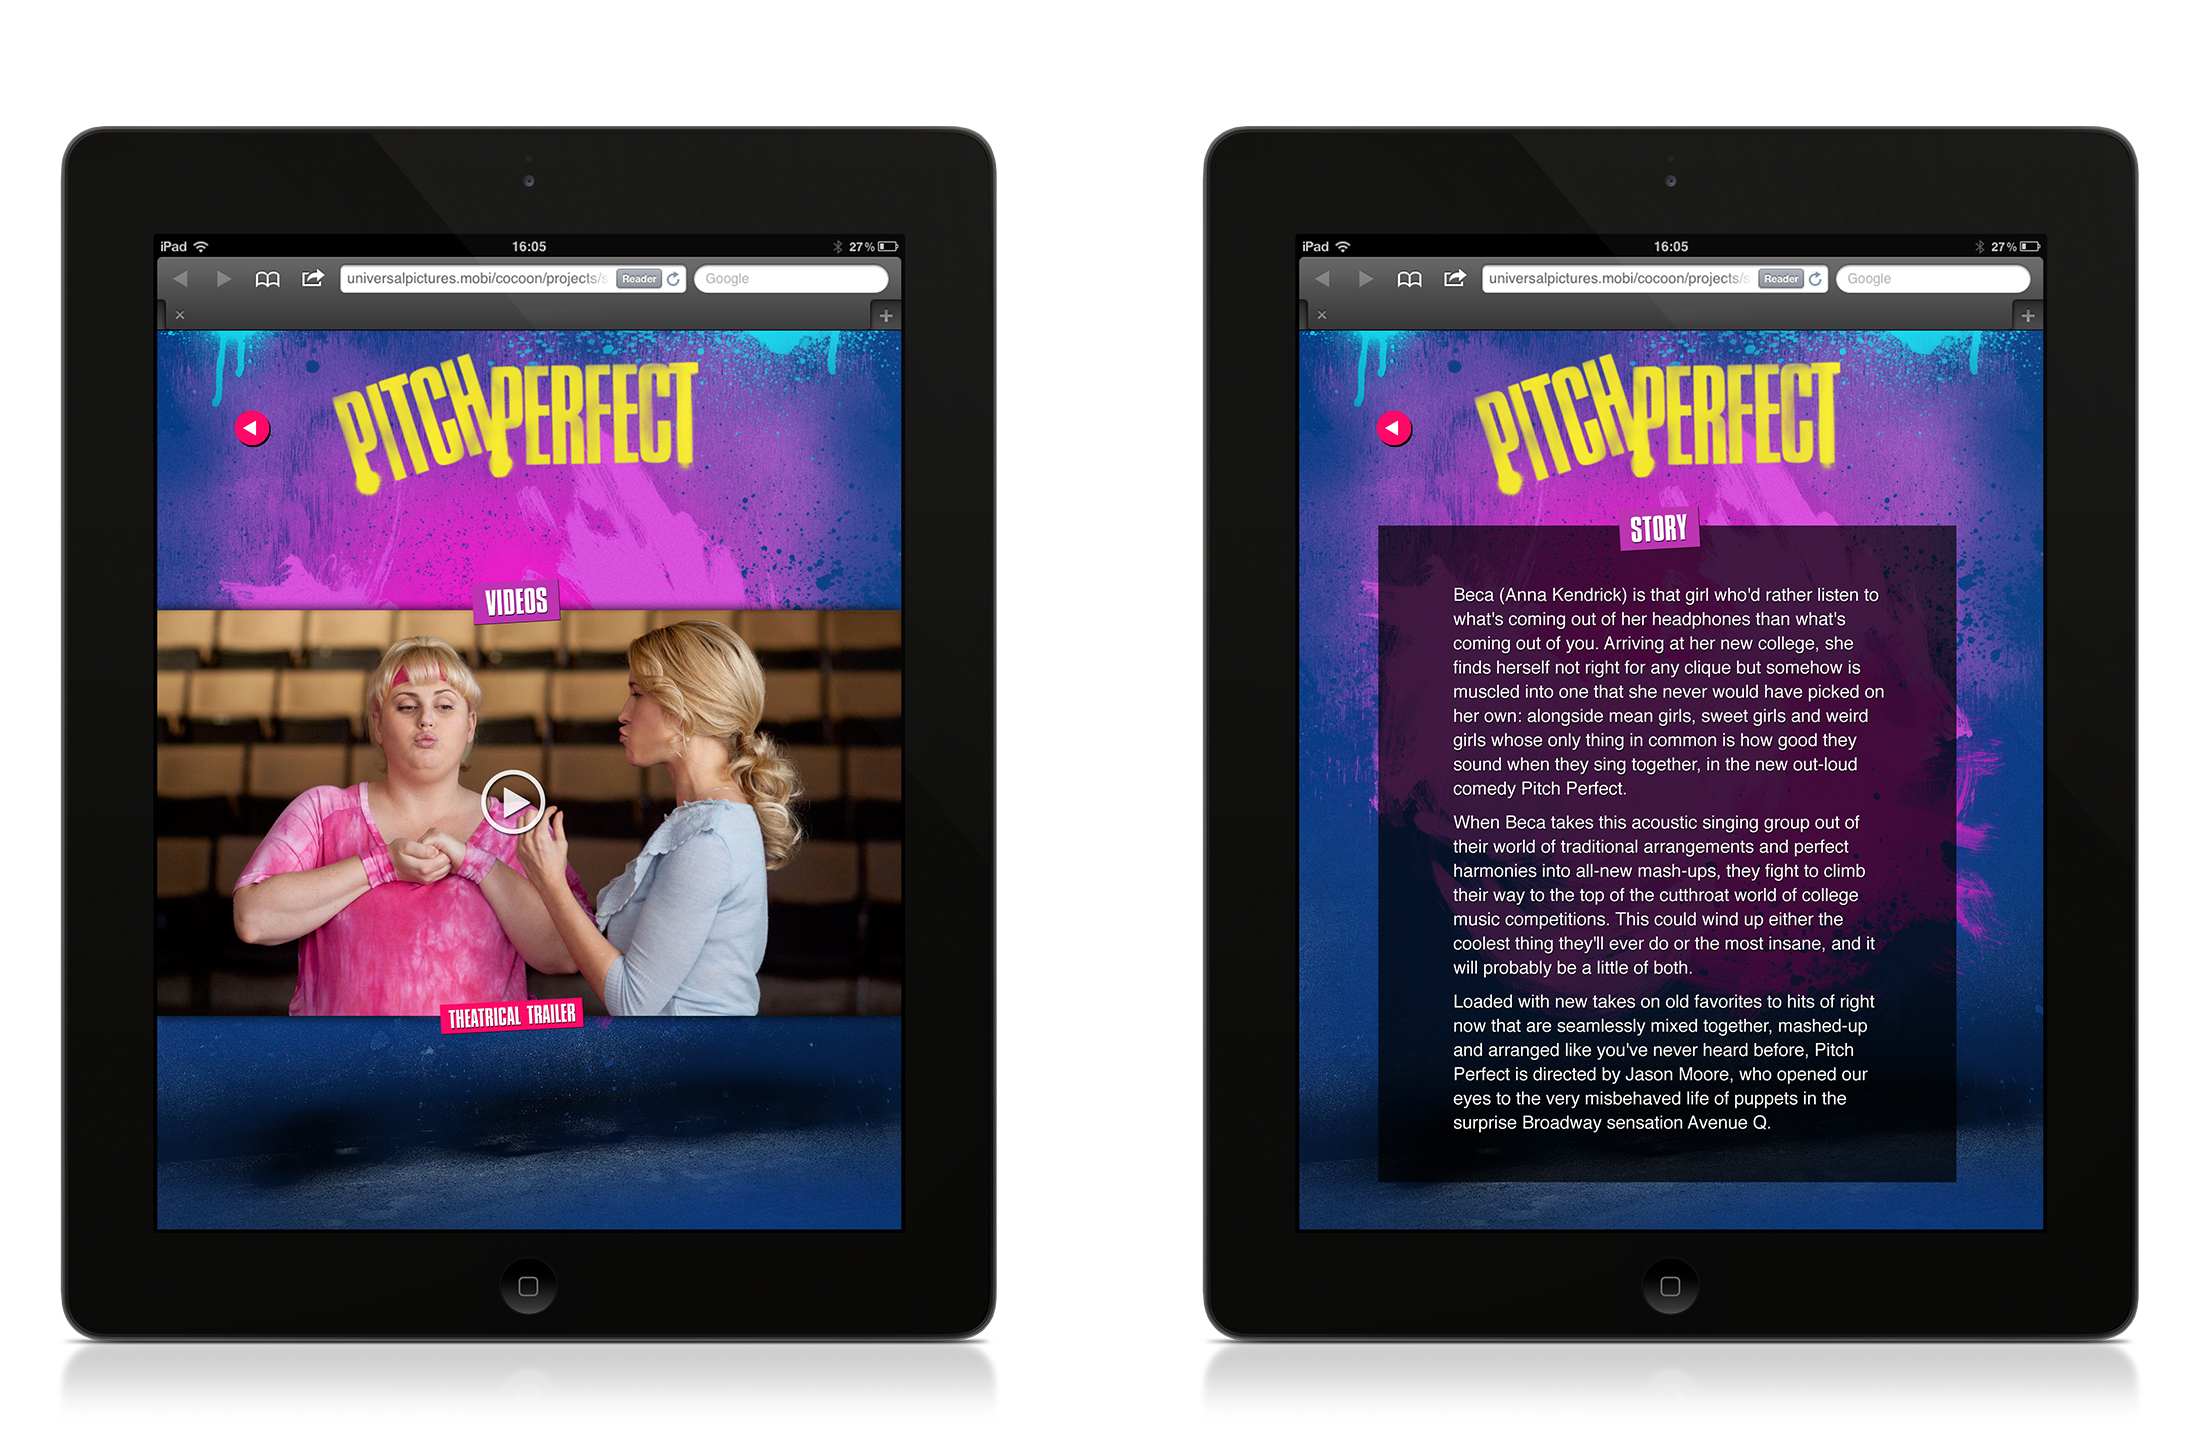 iPad: Video and story screens.